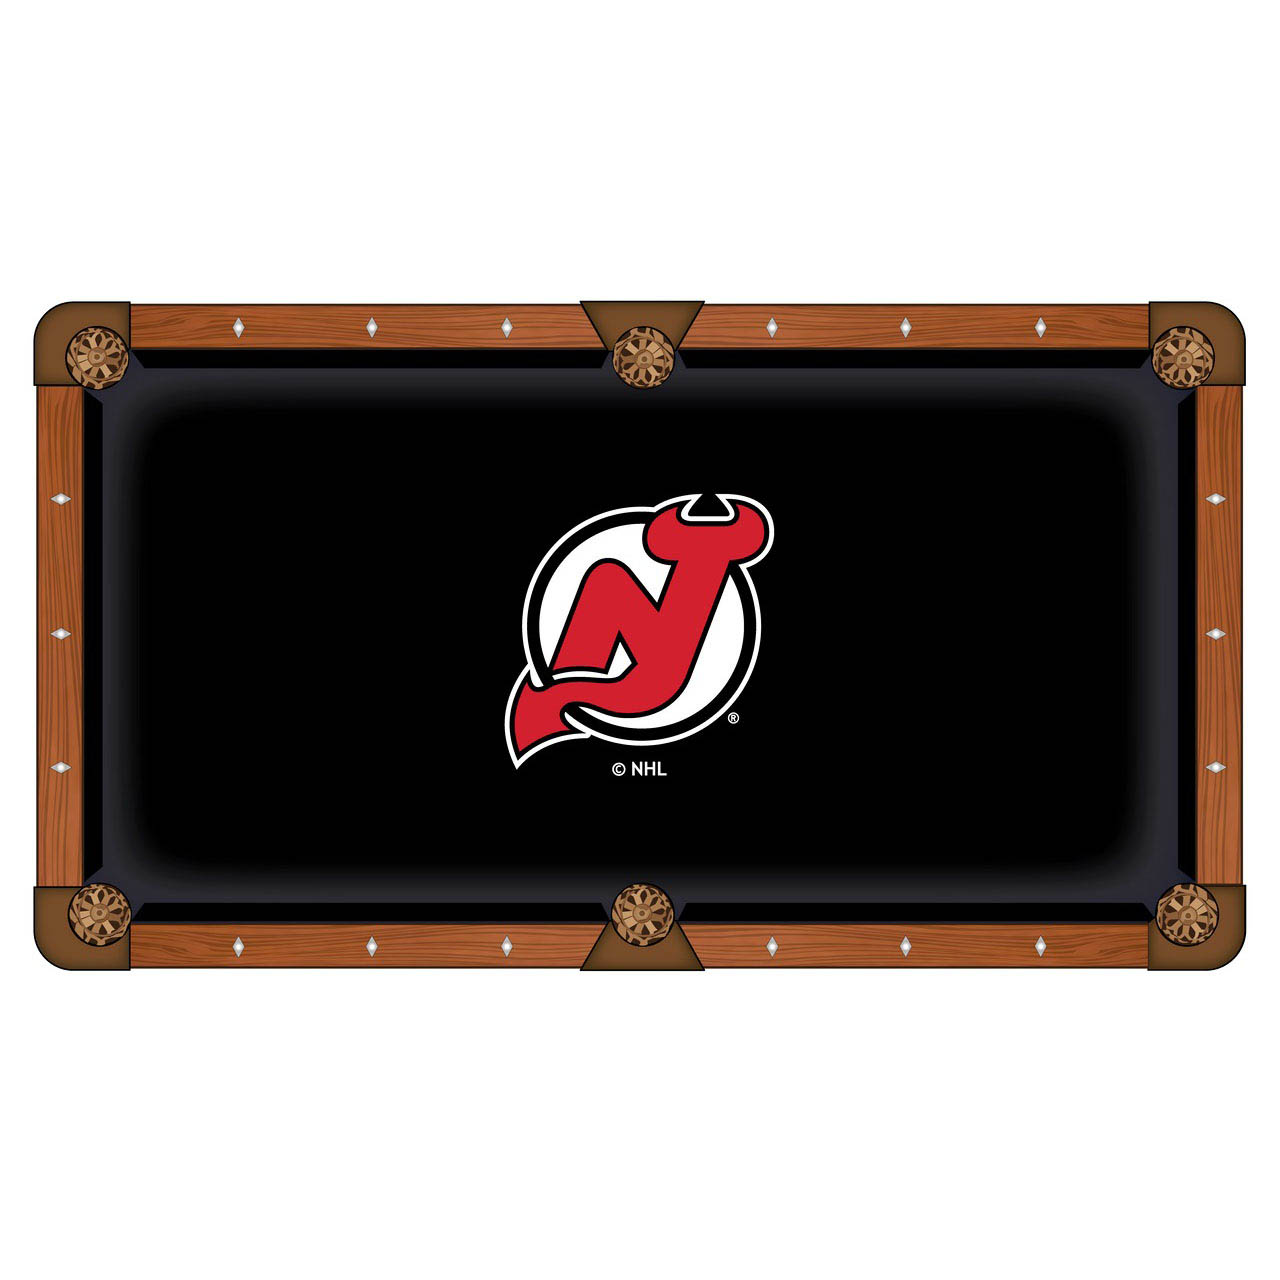 Superb New Jersey Devils Pool Table Cloth Product Photo